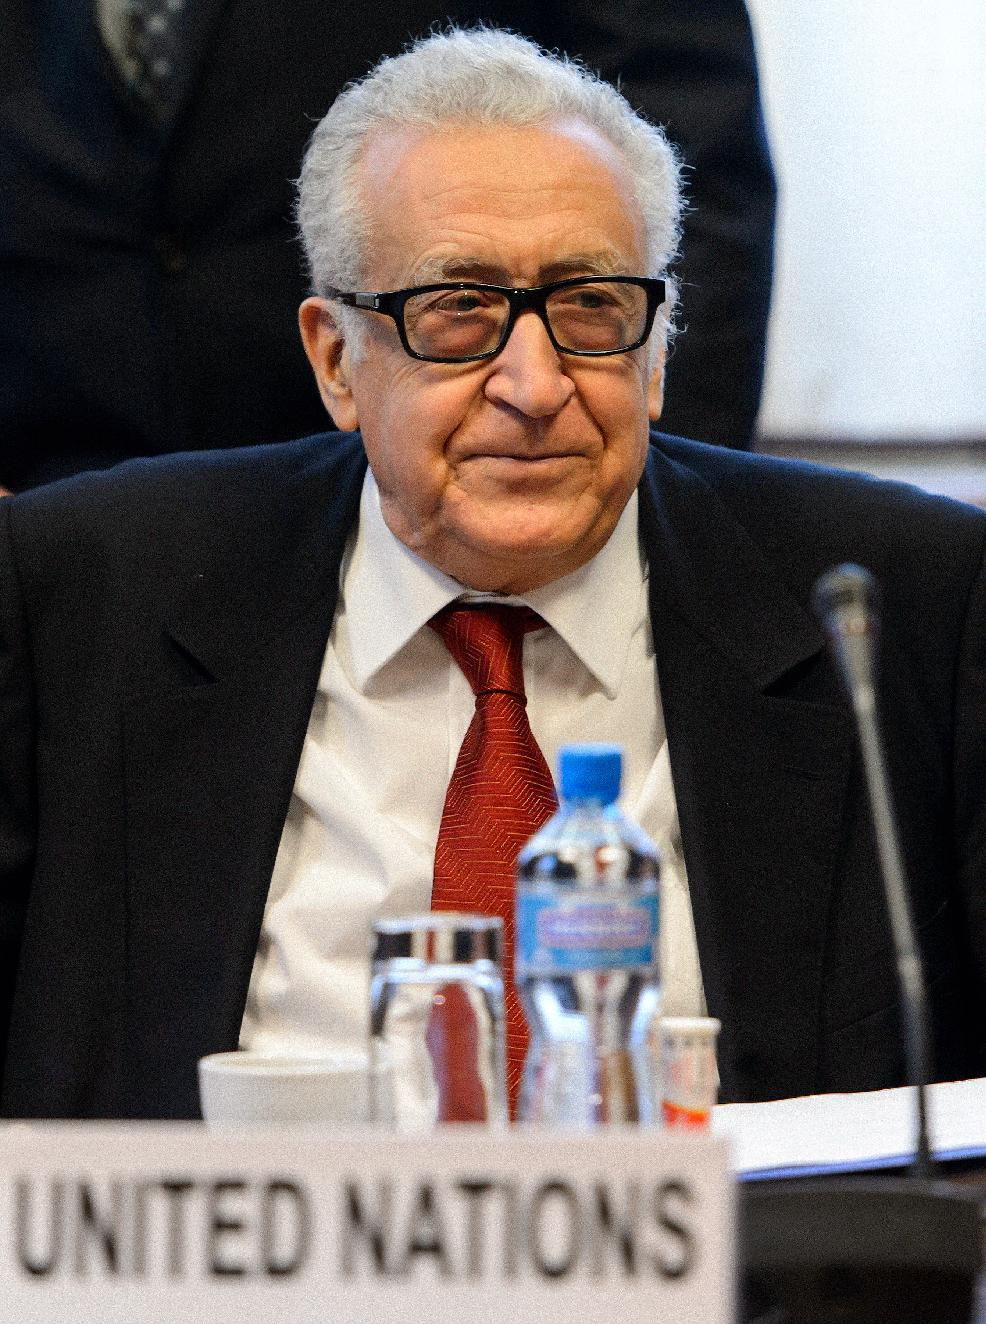 UN-Arab League envoy Lakhdar Brahimi attends a meeting at the United Nations office in Geneva, Switzerland, Friday, Dec. 20, 2013. Brahimi is meeting with U.S. and Russian delegations to try to agree which nations should be invited to Syria peace talks in Geneva next month. (AP Photo/Fabrice Coffrini, Pool)